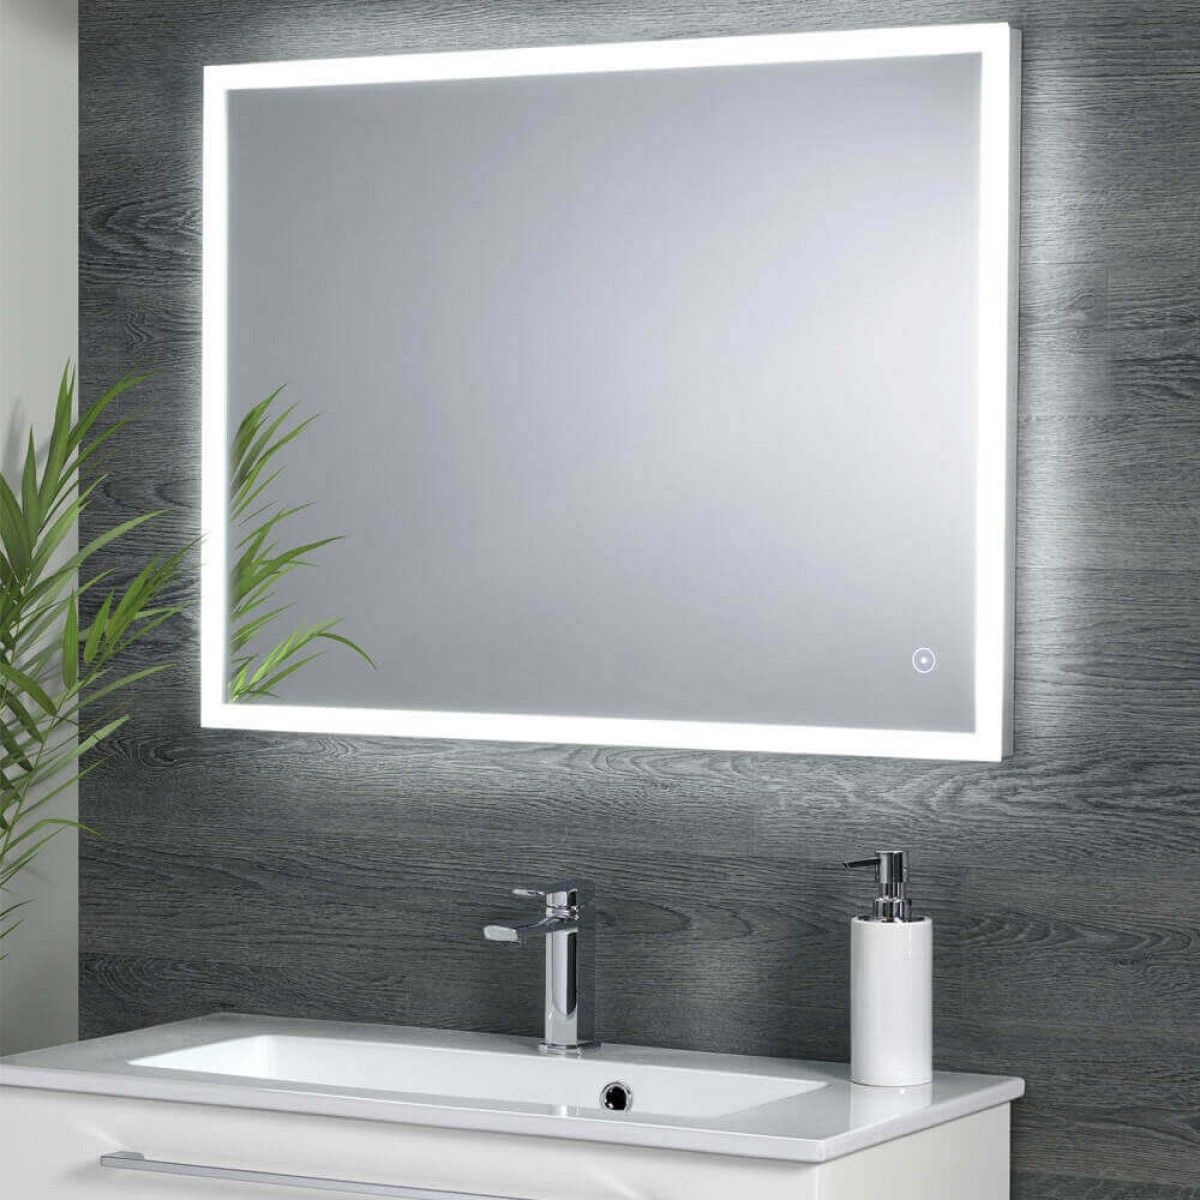 Harbour Glow Led Mirror With Demister Pad Infrared Touch Button 800 X 600mm S A Cuartos